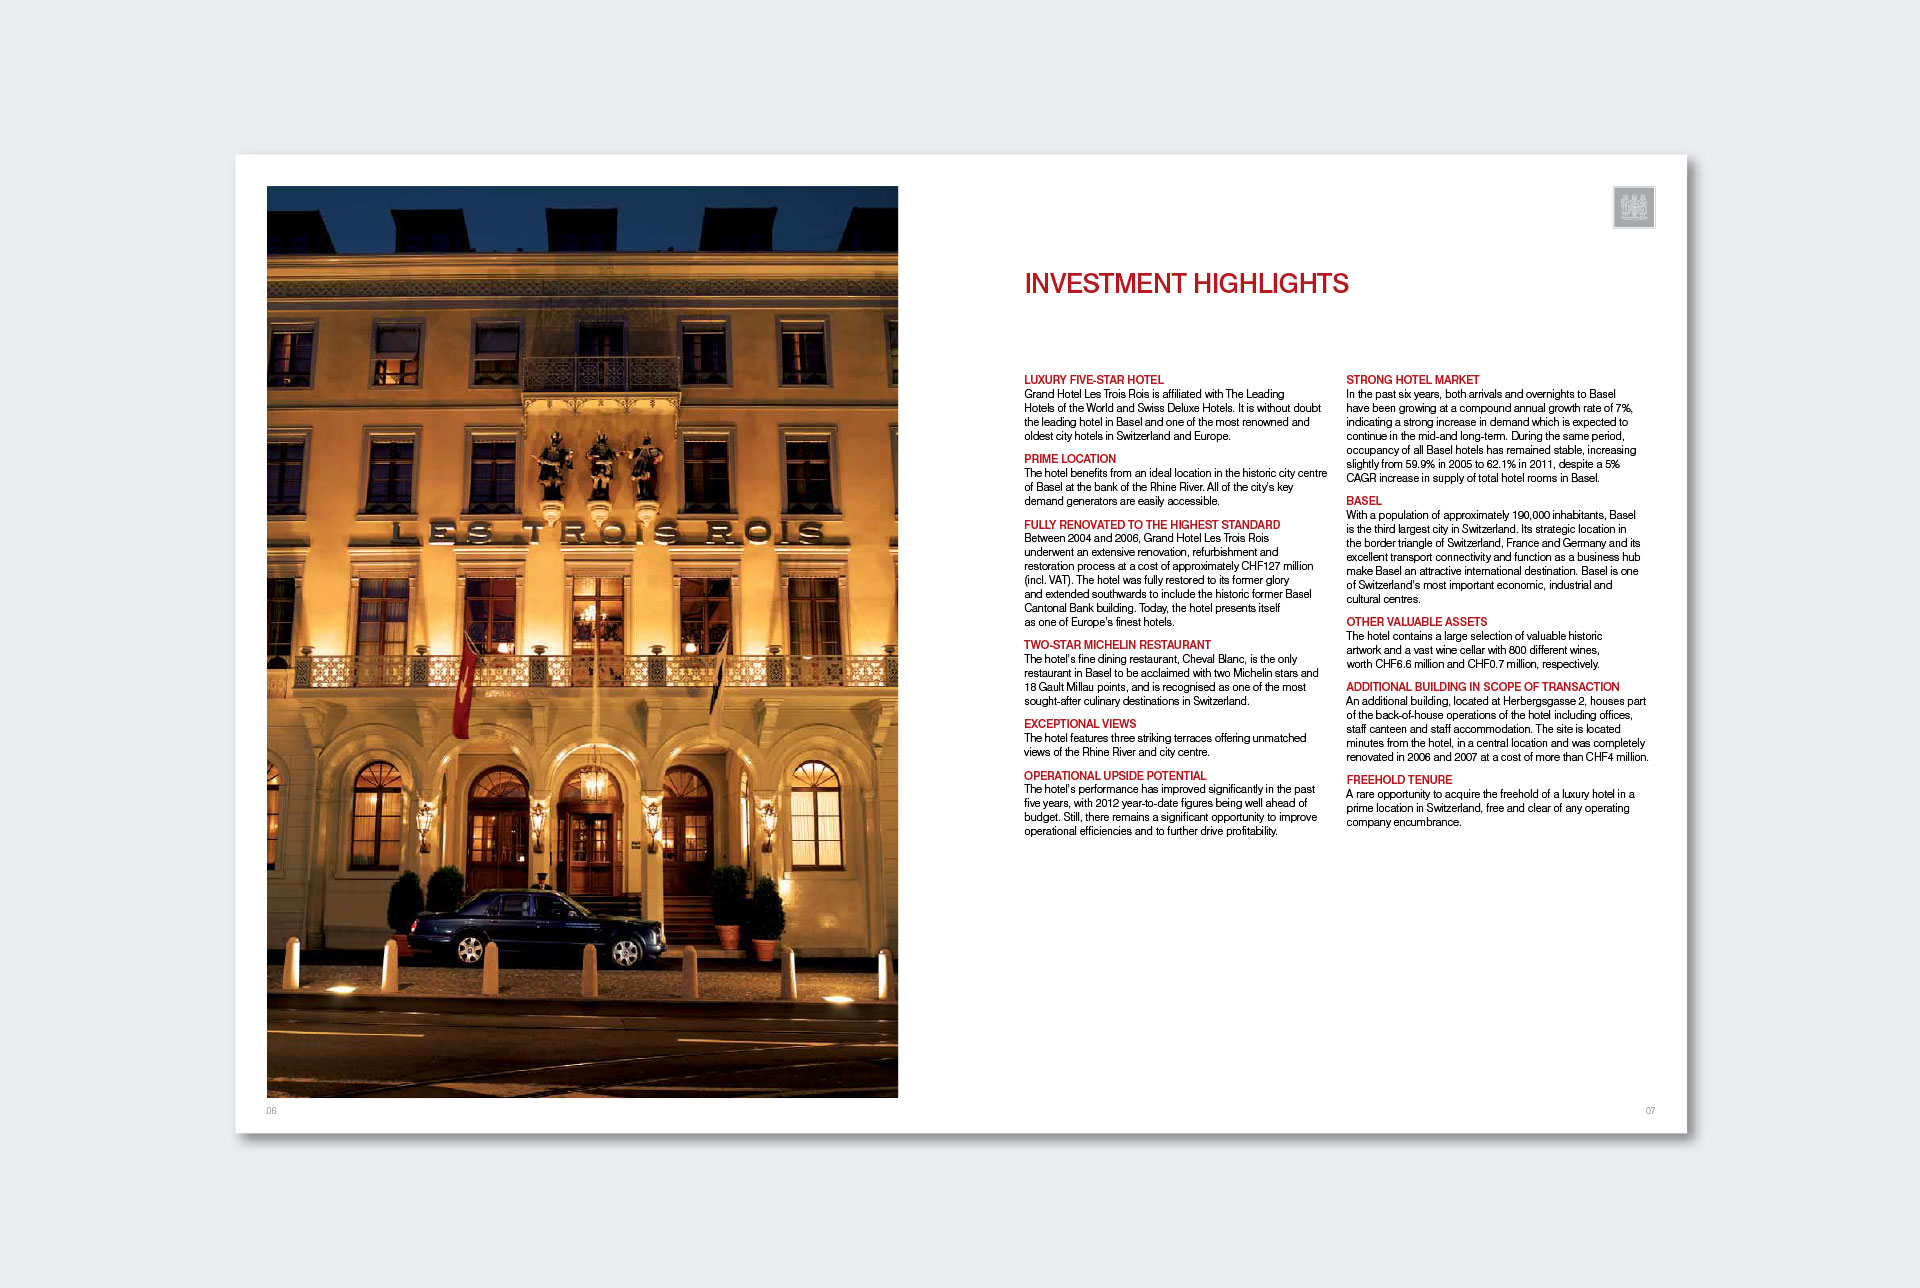 grand-hotel-investment-document-investment-pages..jpg